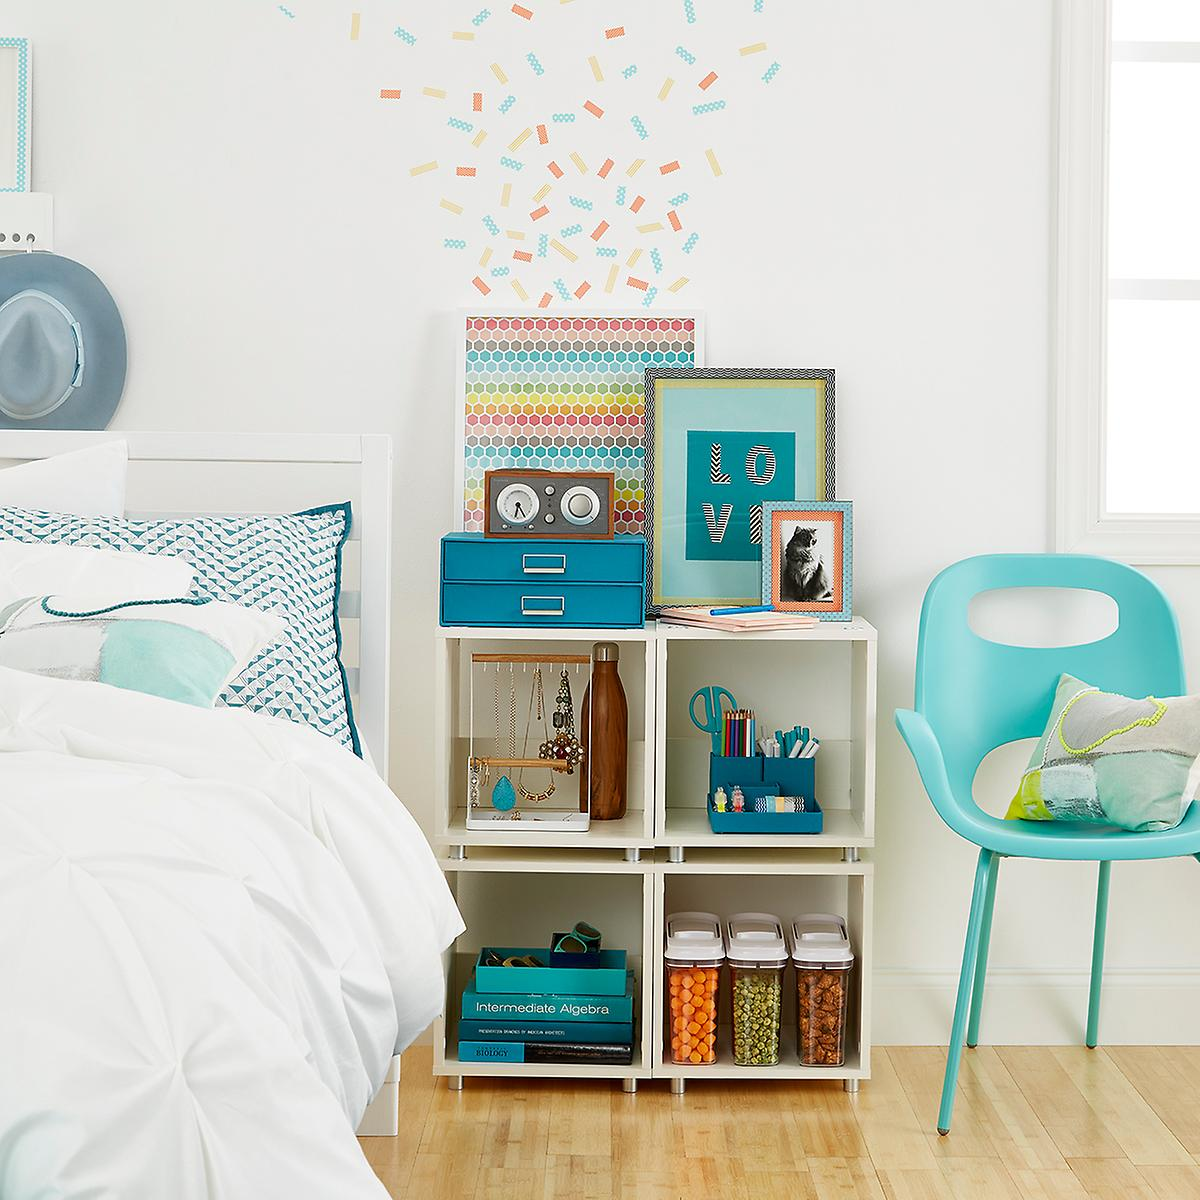 Small White Vario Stackable Cubby Shelf | The Container Store